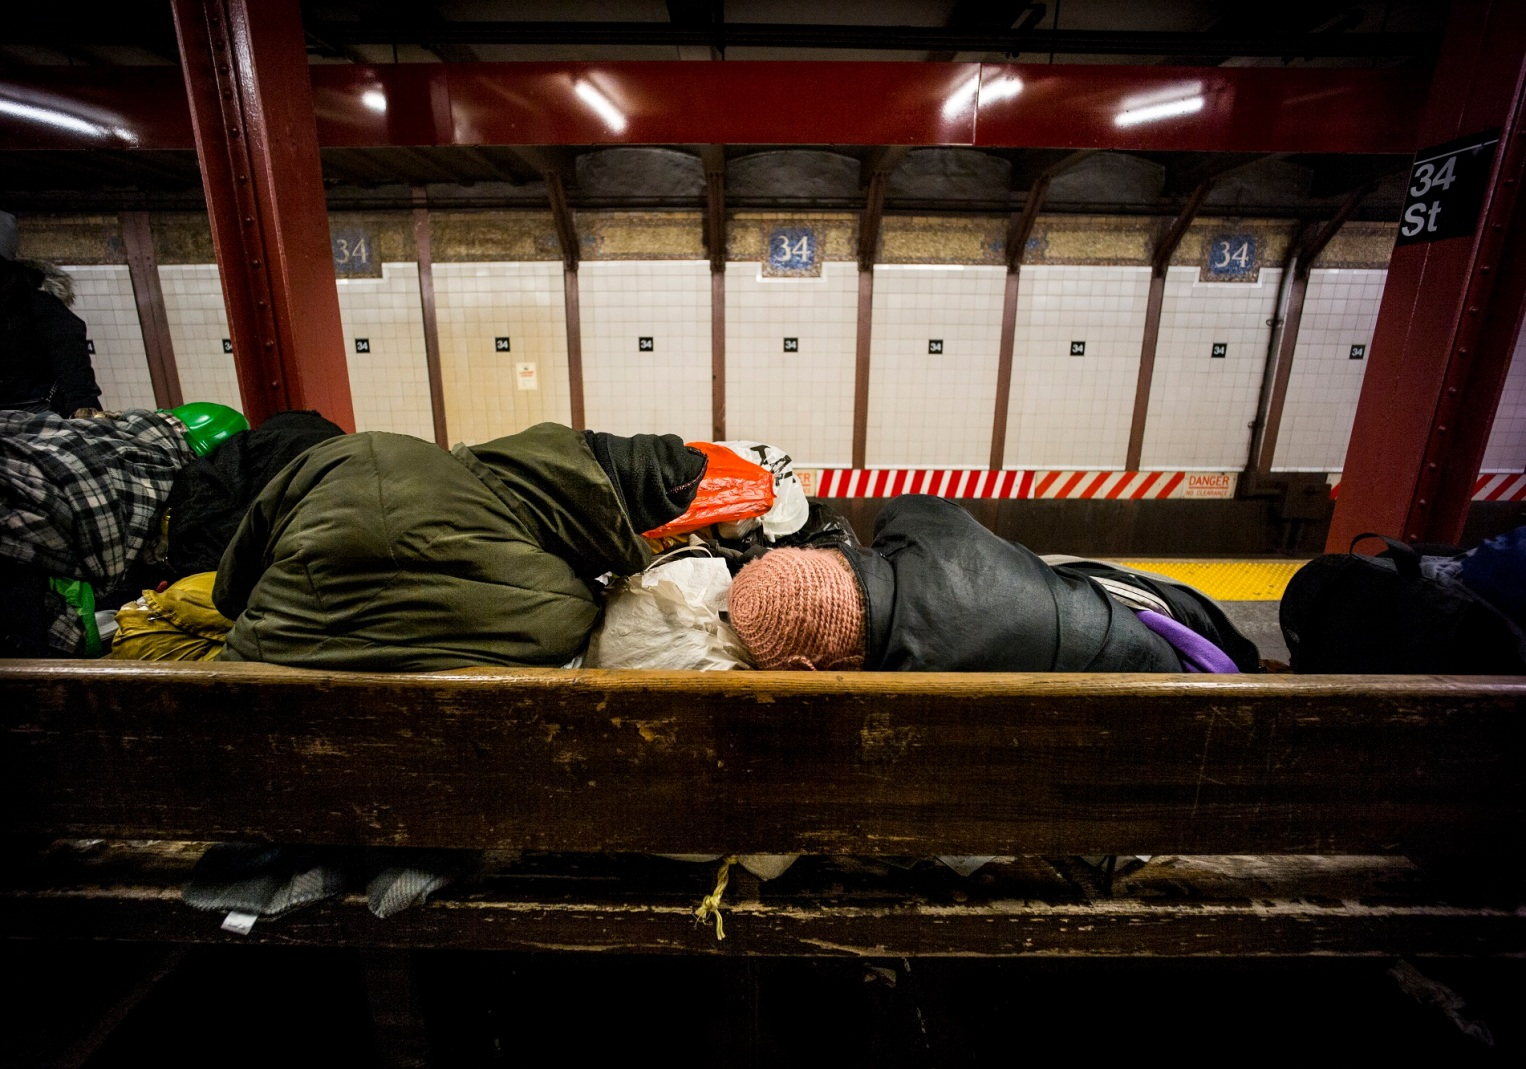 homeless-sleeping-on-bench-subway-nyc-2016-daniel-d-teoli-jr